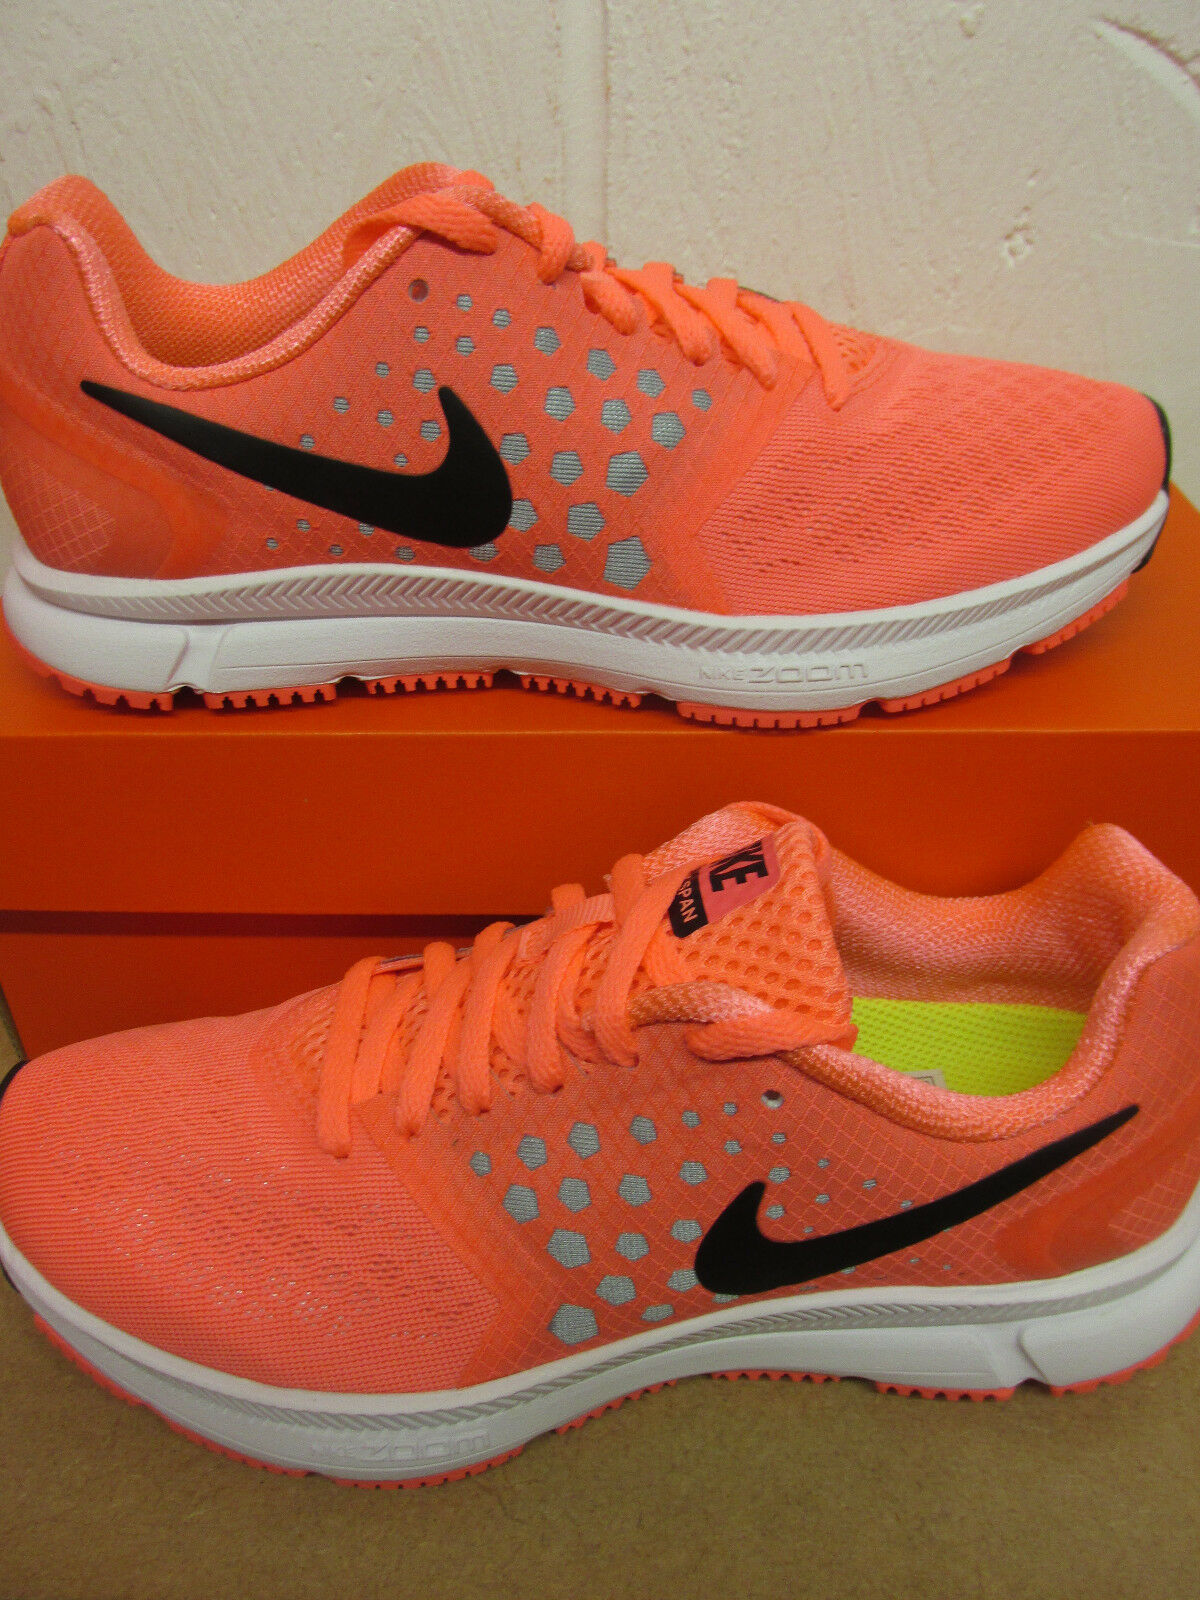 Nike Womens Zoom 601 Span Running Trainers 852450 601 Zoom Sneakers Shoes caa6d6